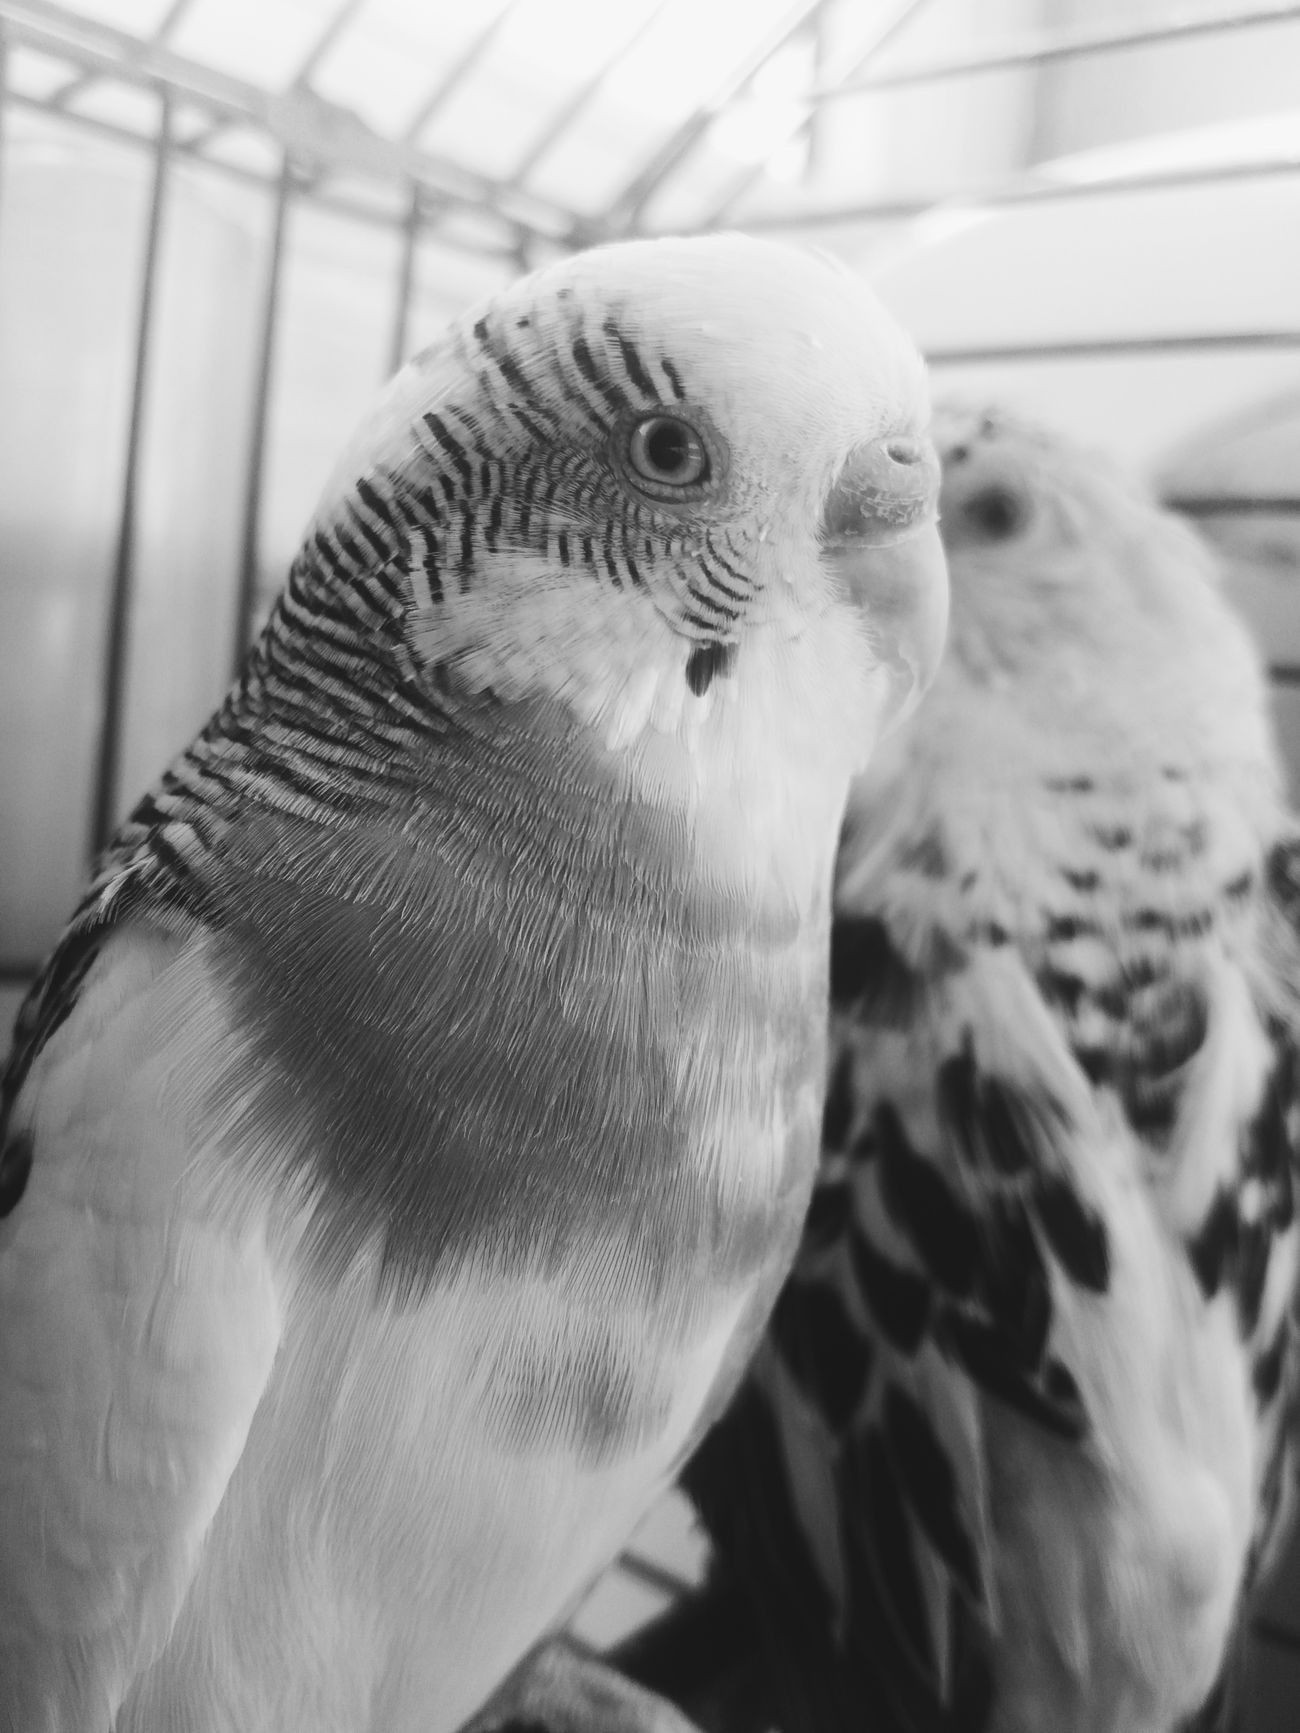 Bird No People Close-up Animal Themes Peaceful Moment Birds_collection Birds Of EyeEm  Birds🐦⛅ Animal Eye Animal Head  Black Black And White Animal EyeEm Nature Lover Sunlight And Shade Taking Photos Photography Bird Photography Lights And Shadows Bnw_collection Cute Hi!